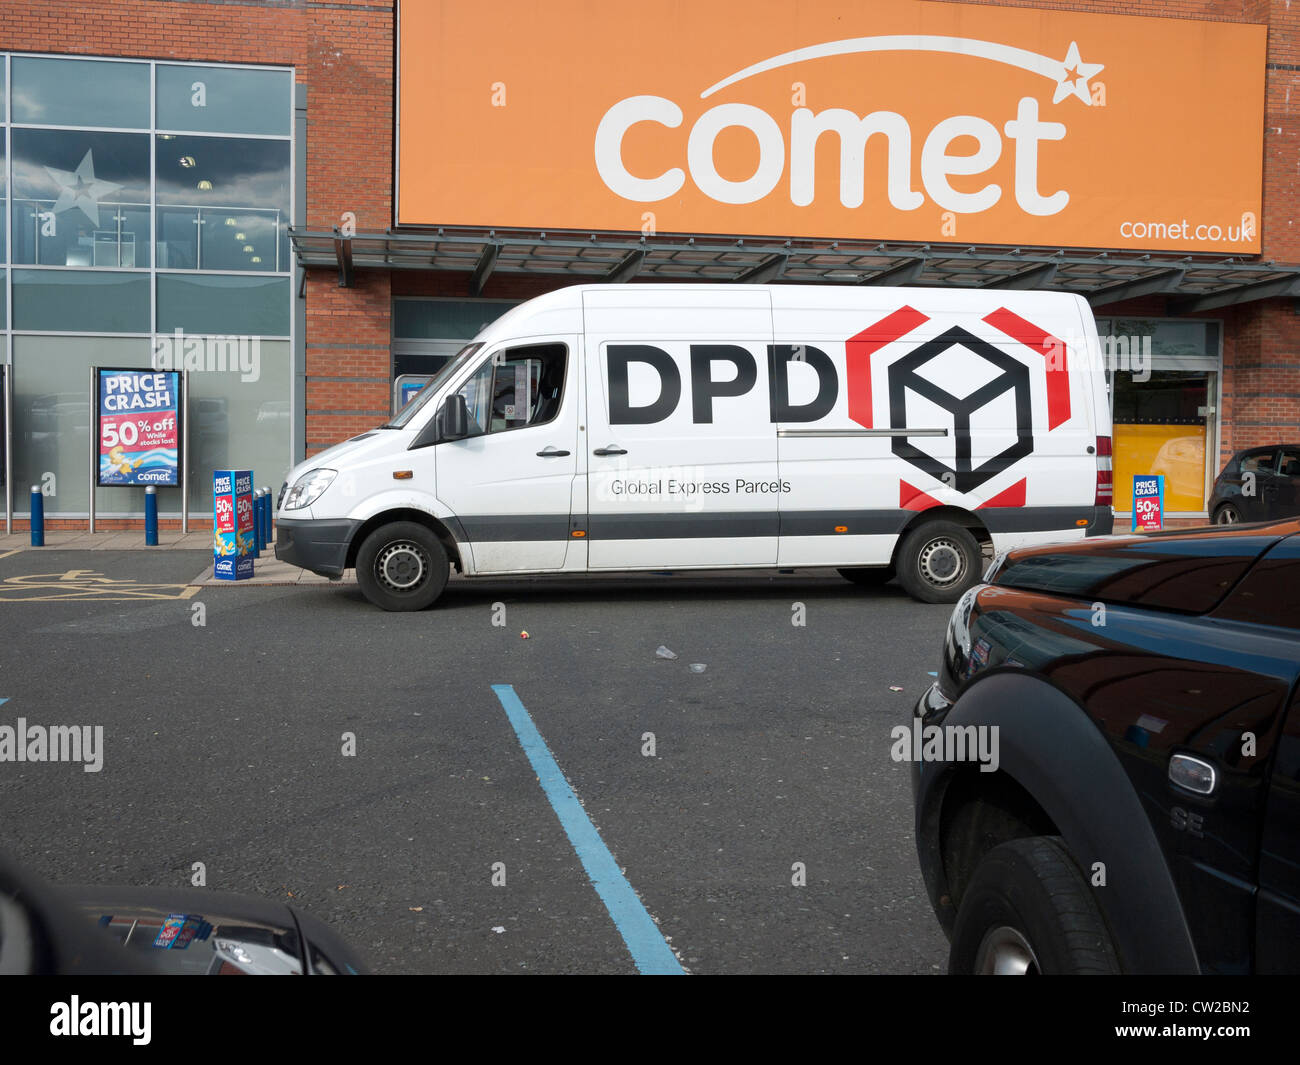 58ddeede31fcbe Dpd Parcel Delivery Van Stock Photos   Dpd Parcel Delivery Van Stock ...